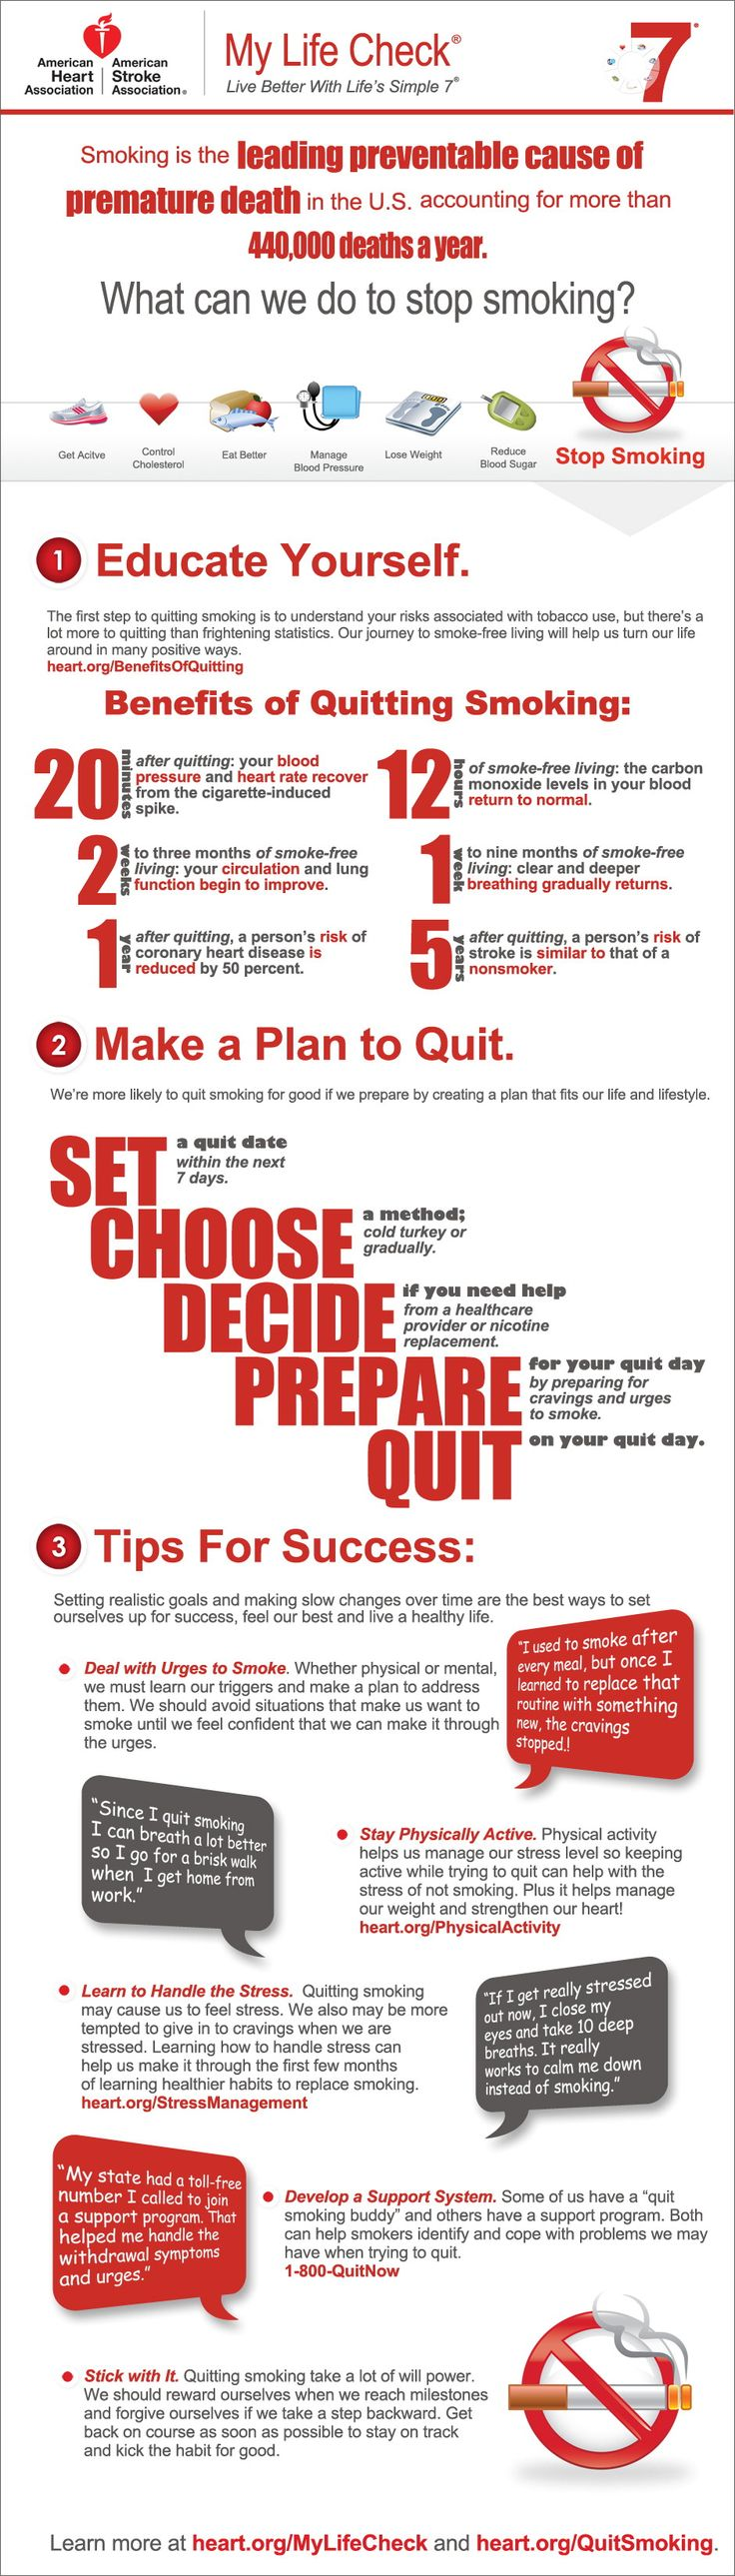 the benefits of quitting smoking Find out about the benefits of quitting smoking, including more money, better health, increased fertility, less stress, more energy, and better sex.